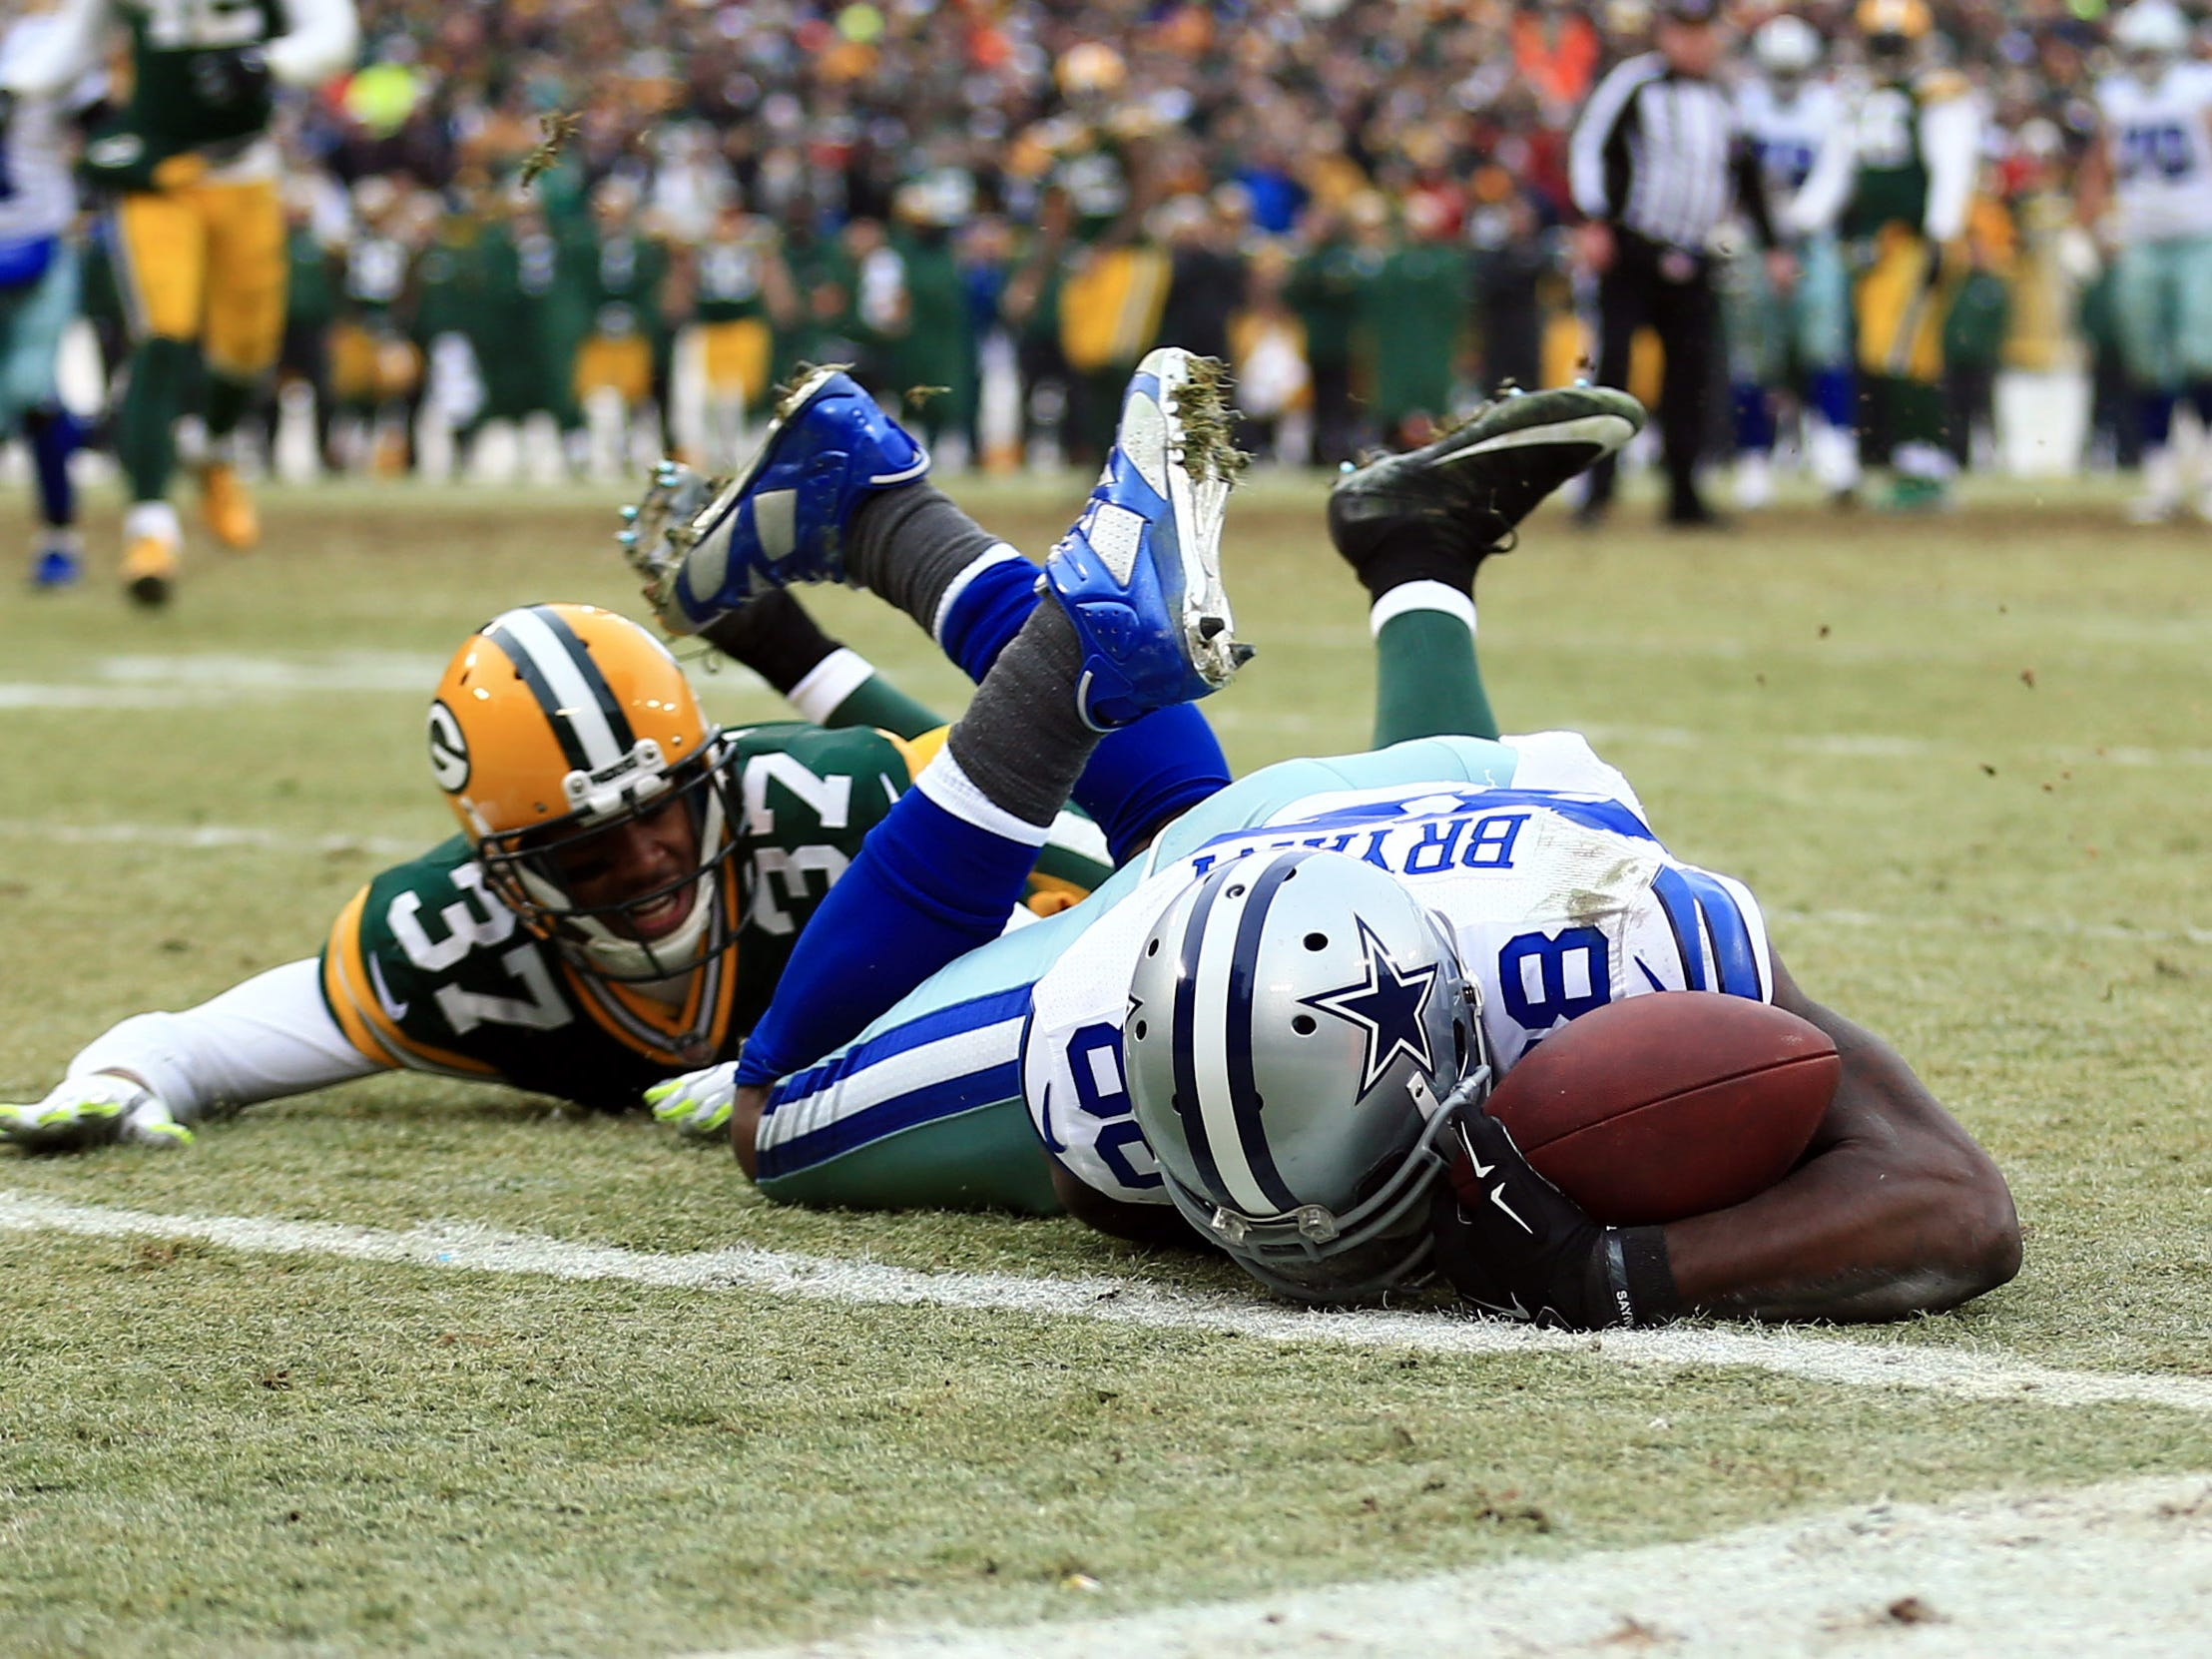 Dez Bryant (88) is unable to catch a pass against the Green Bay Packers in a 2014 NFC divisional playoff game at Lambeau Field.